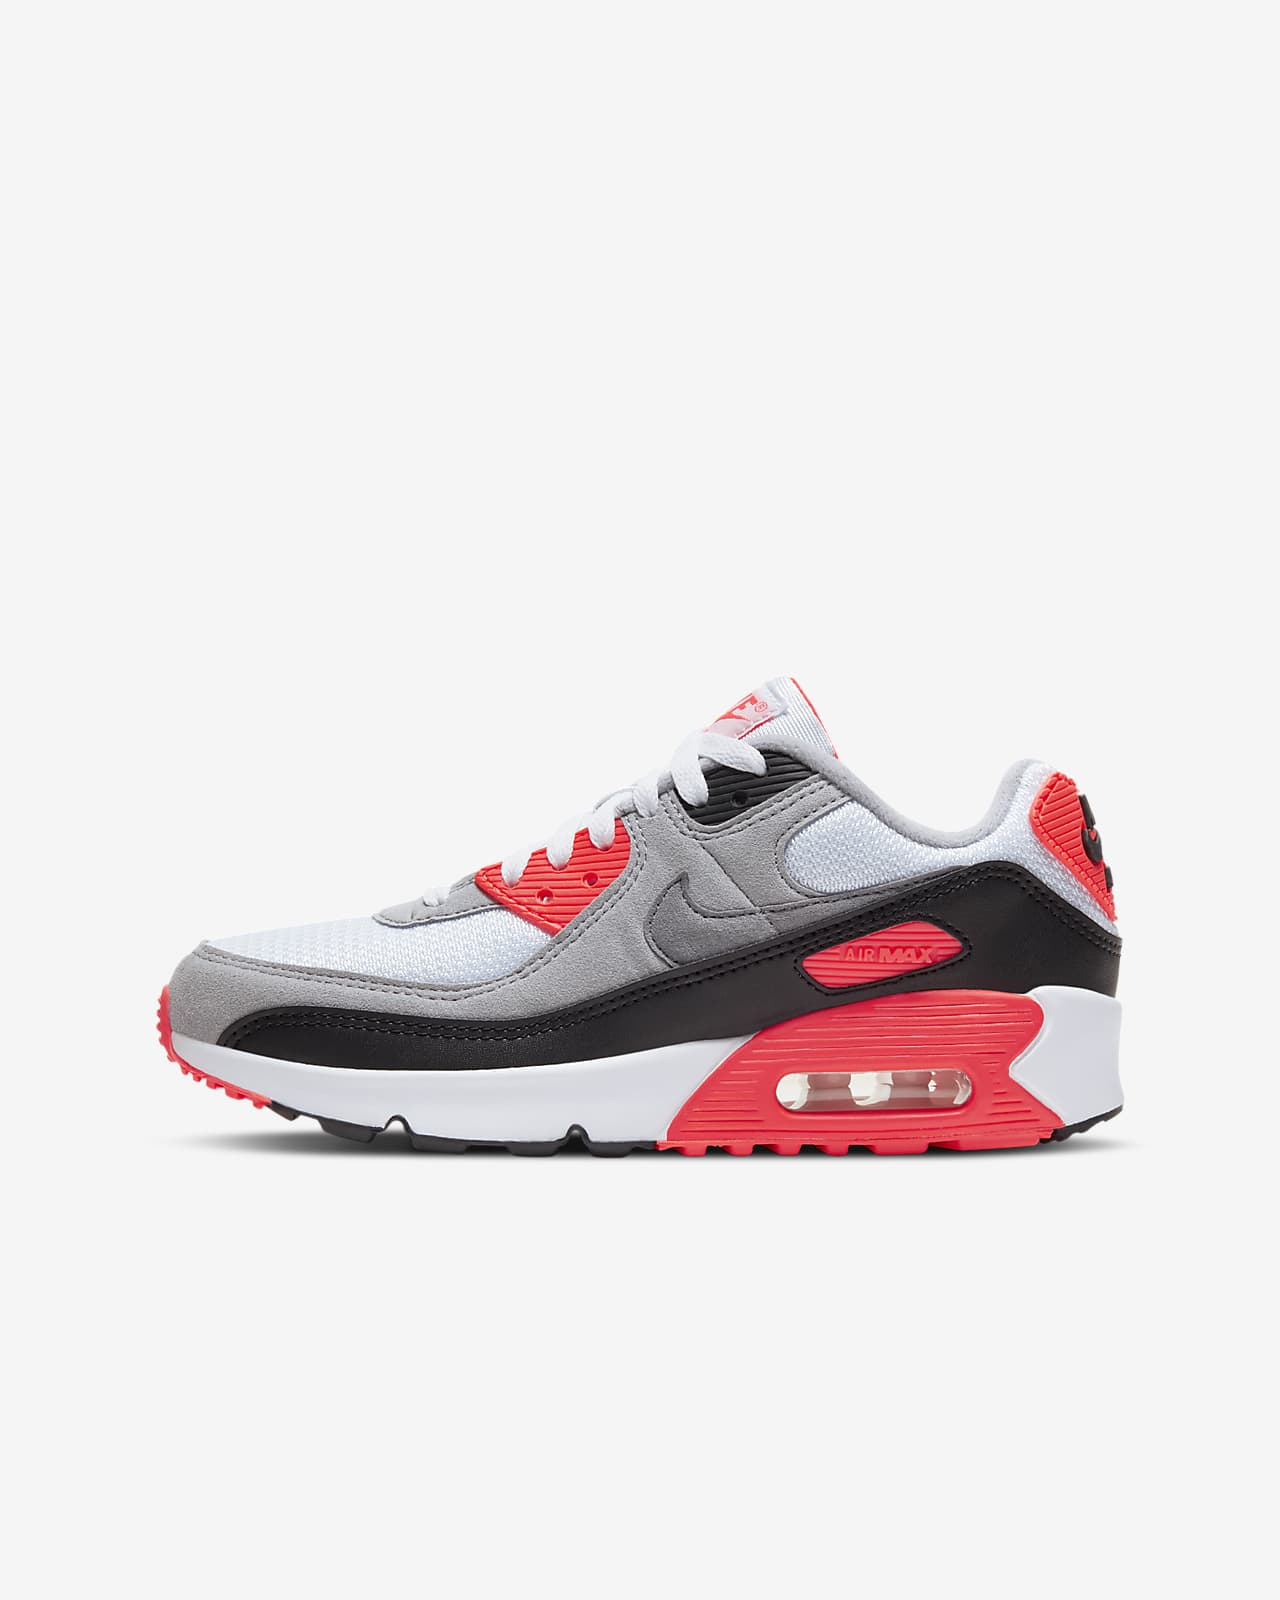 Nike Air Max 90 QS Big Kids' Shoe